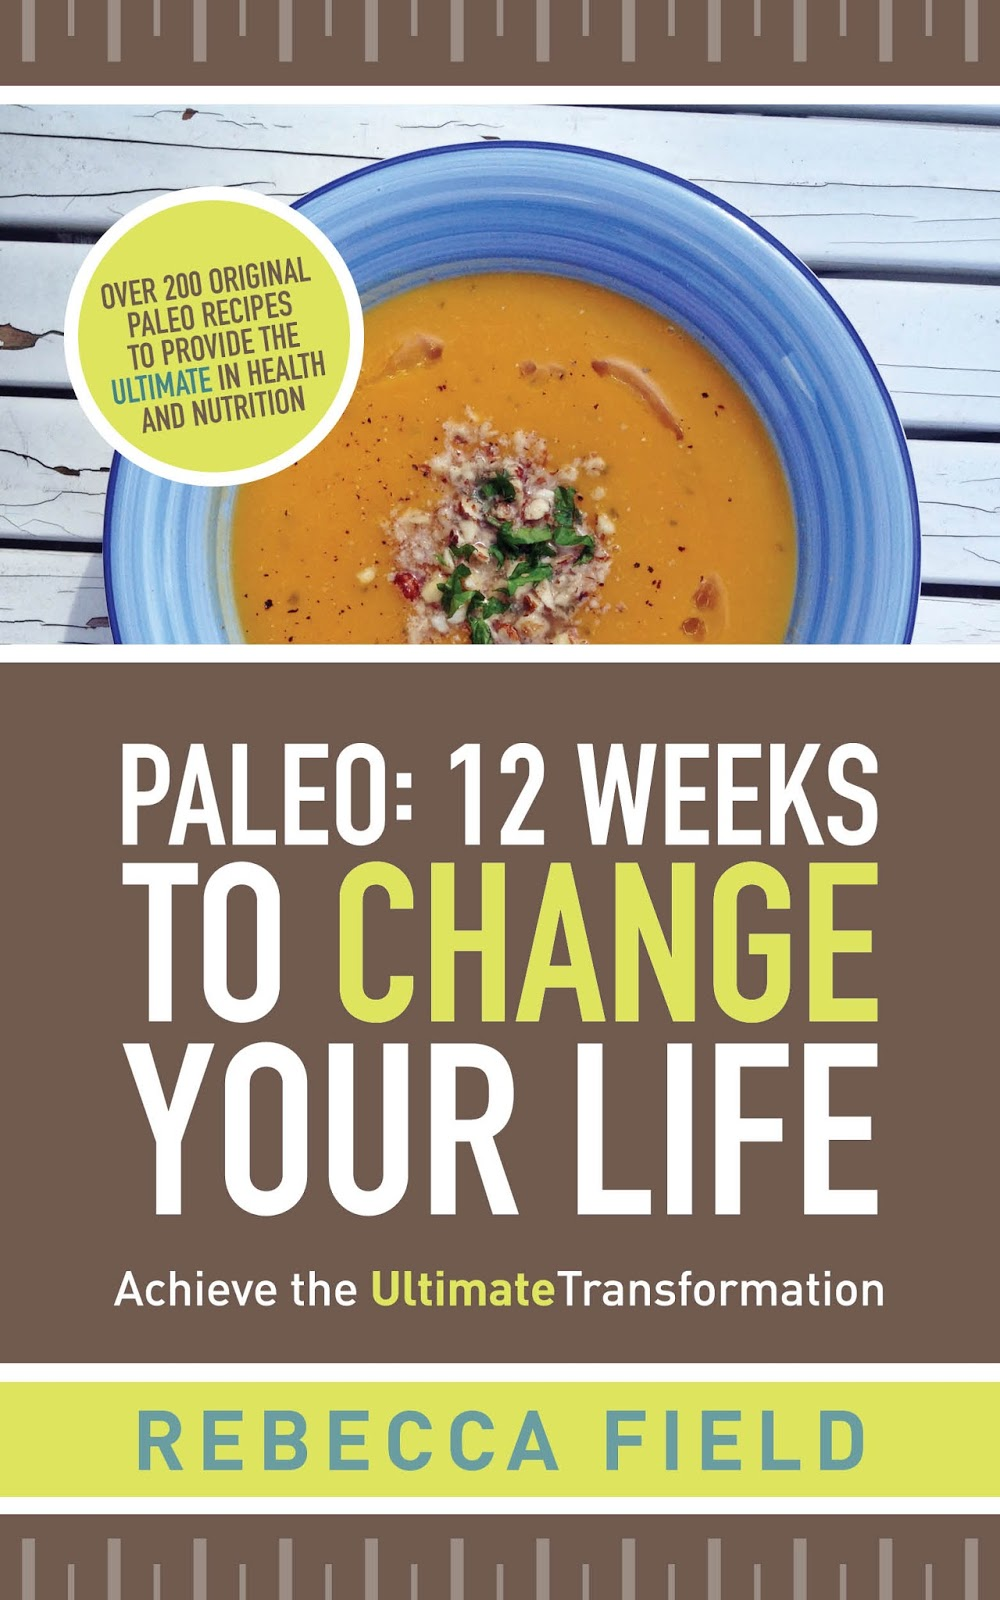 Paleo 12 weeks to change your life book front cover